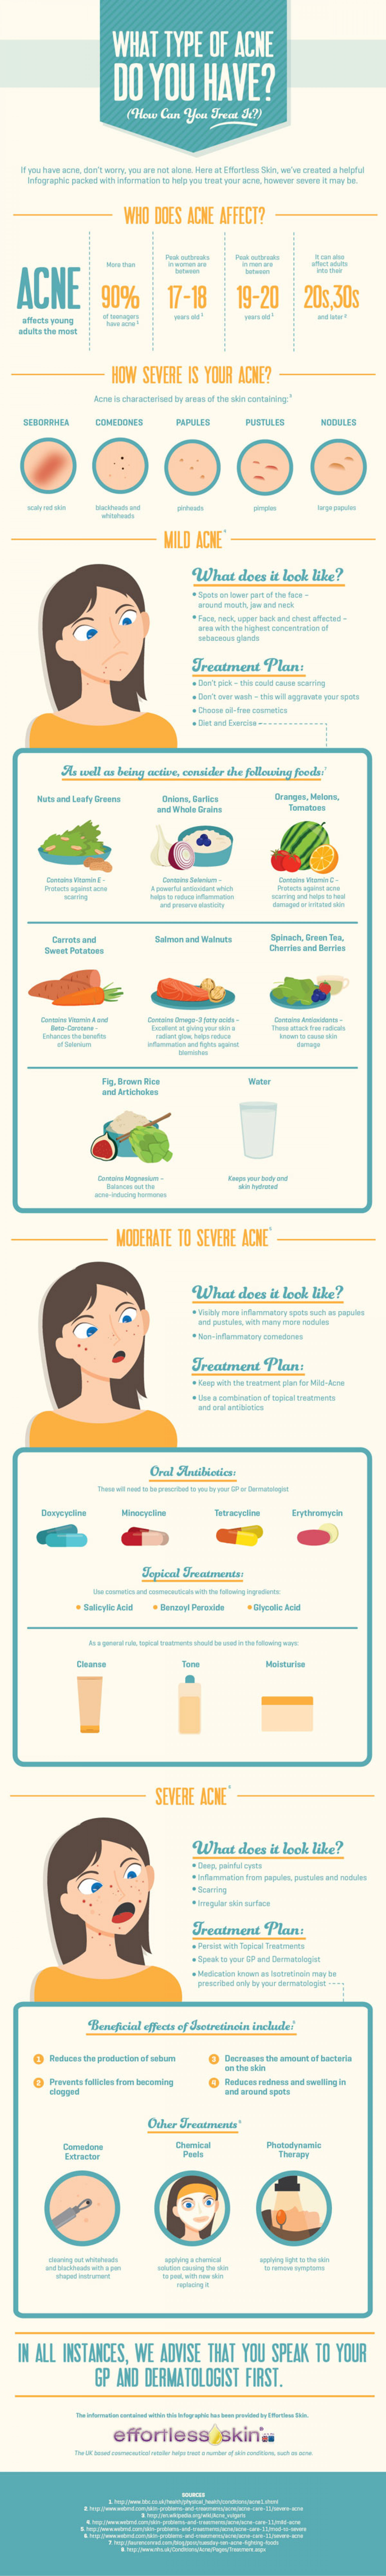 What Type of Acne Do You Have and How Can You Treat It? Infographic